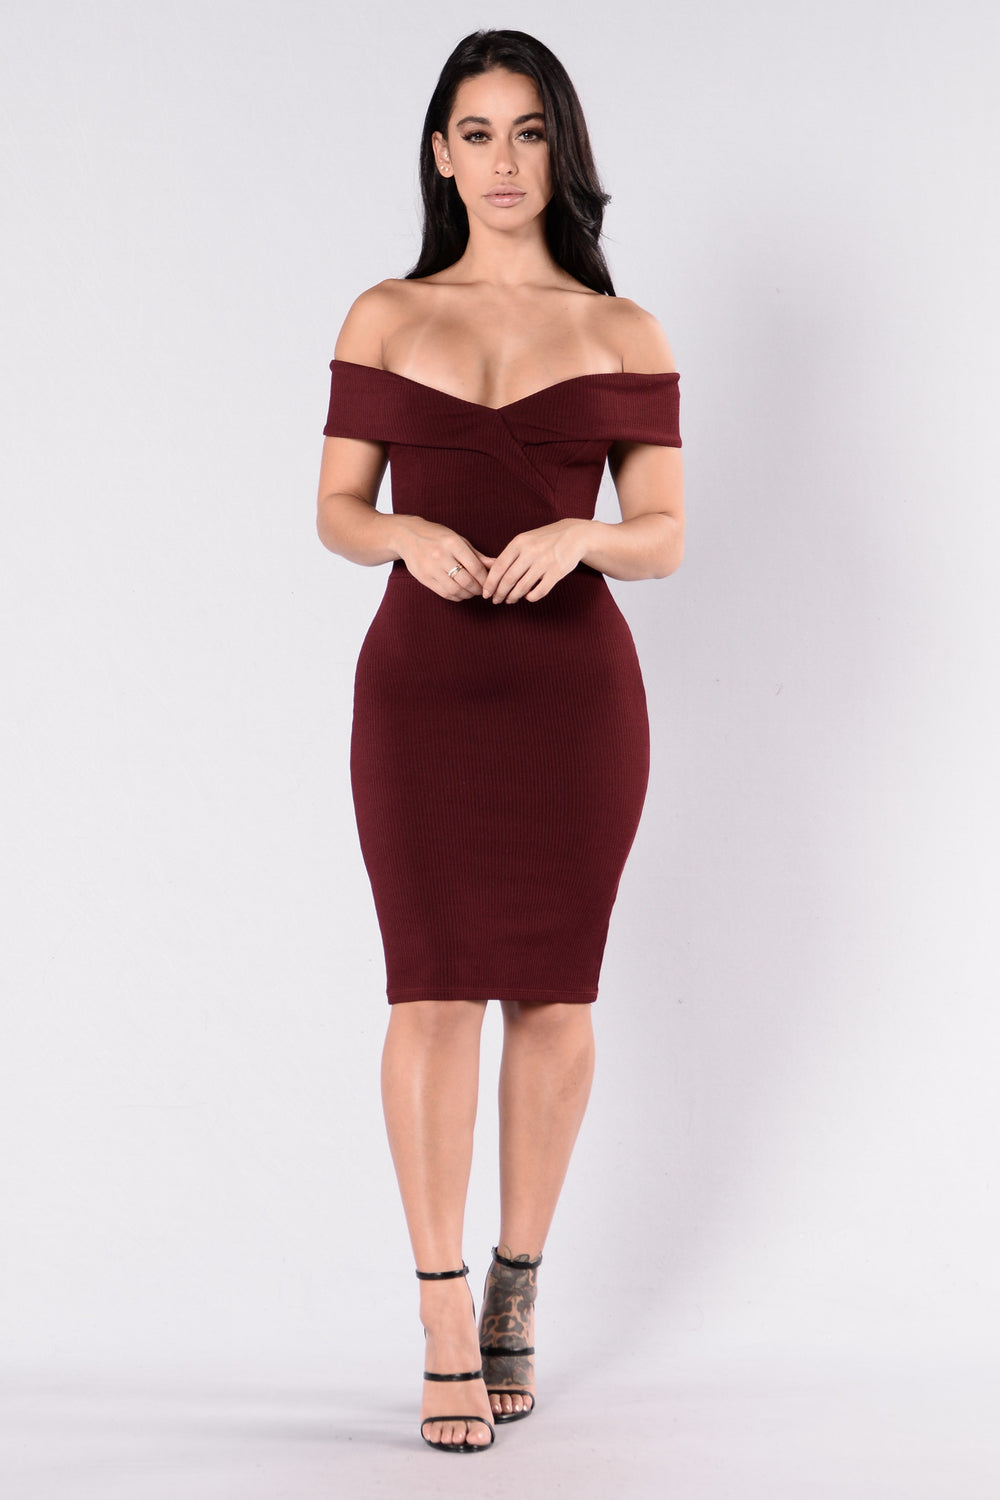 Speak Your Heart Dress - Burgundy